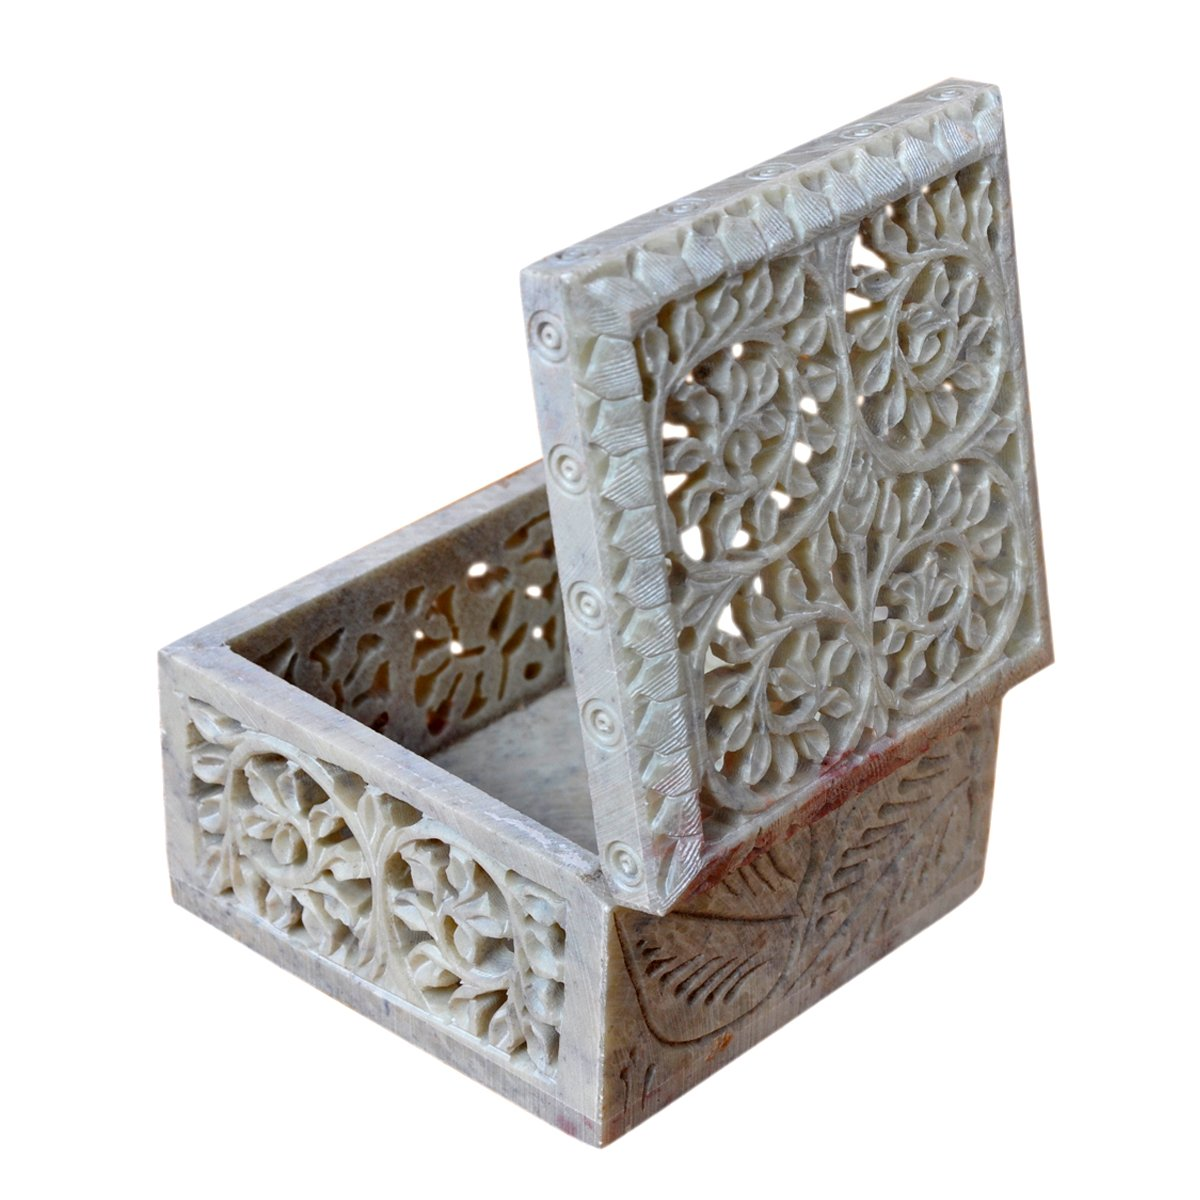 Hashcart Indian Artisan, Handmade & Handcrafted Stone Jewelry Box/Jewelry Storage Organizer/Trinket Jewelry Box/Gift Box with Traditional Design by Hashcart (Image #4)